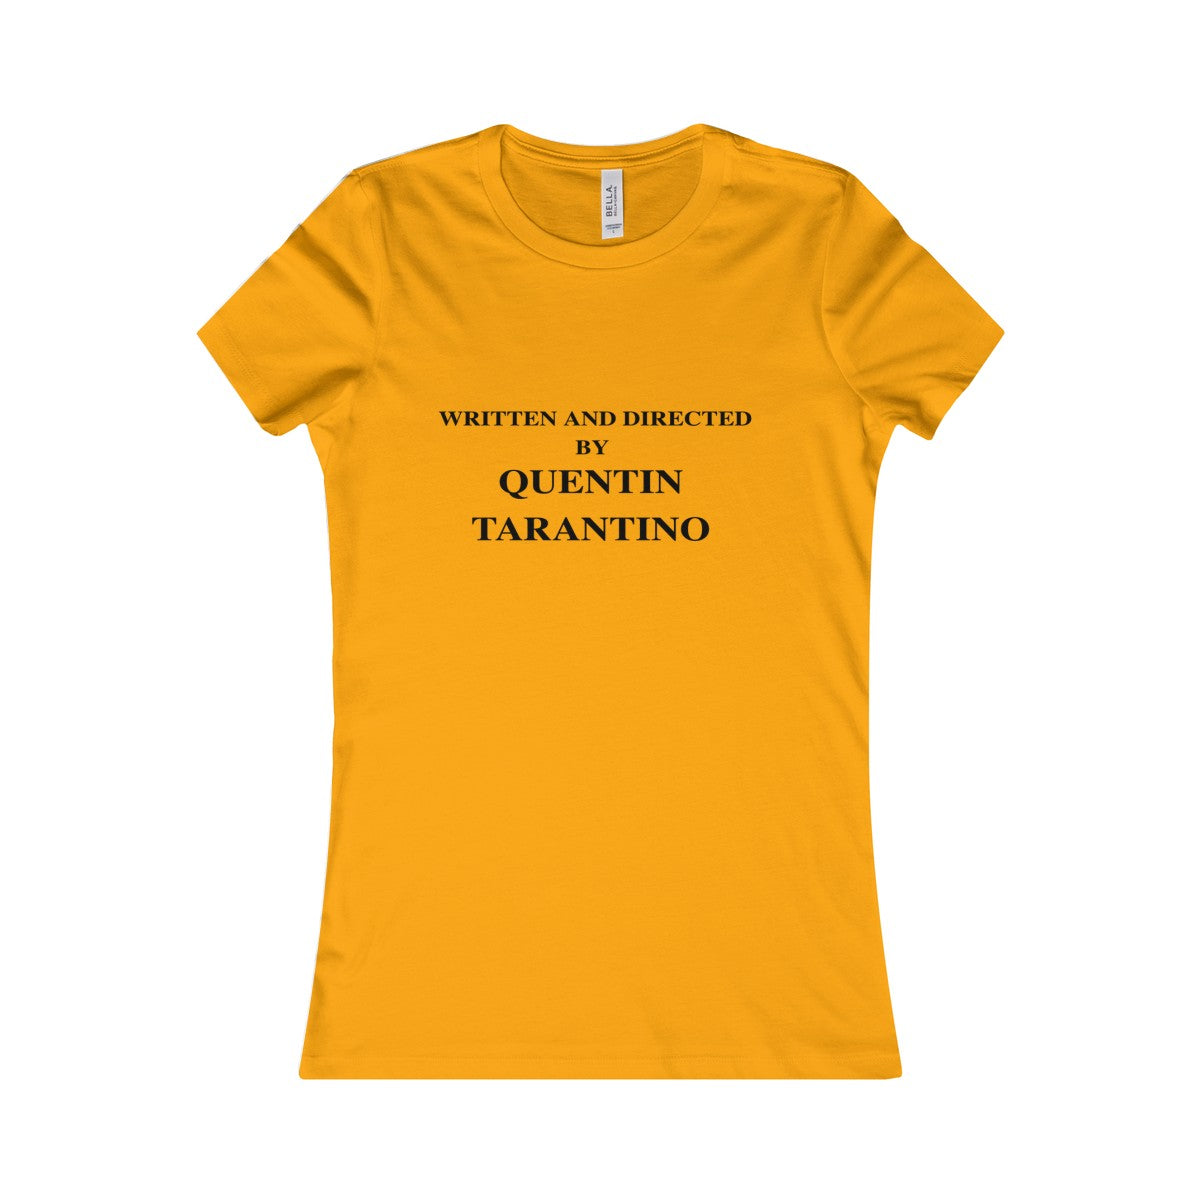 Vintage Women's Written and Directed by Quentin Tarantino Shirt (Kill Bill) by Runwoodie